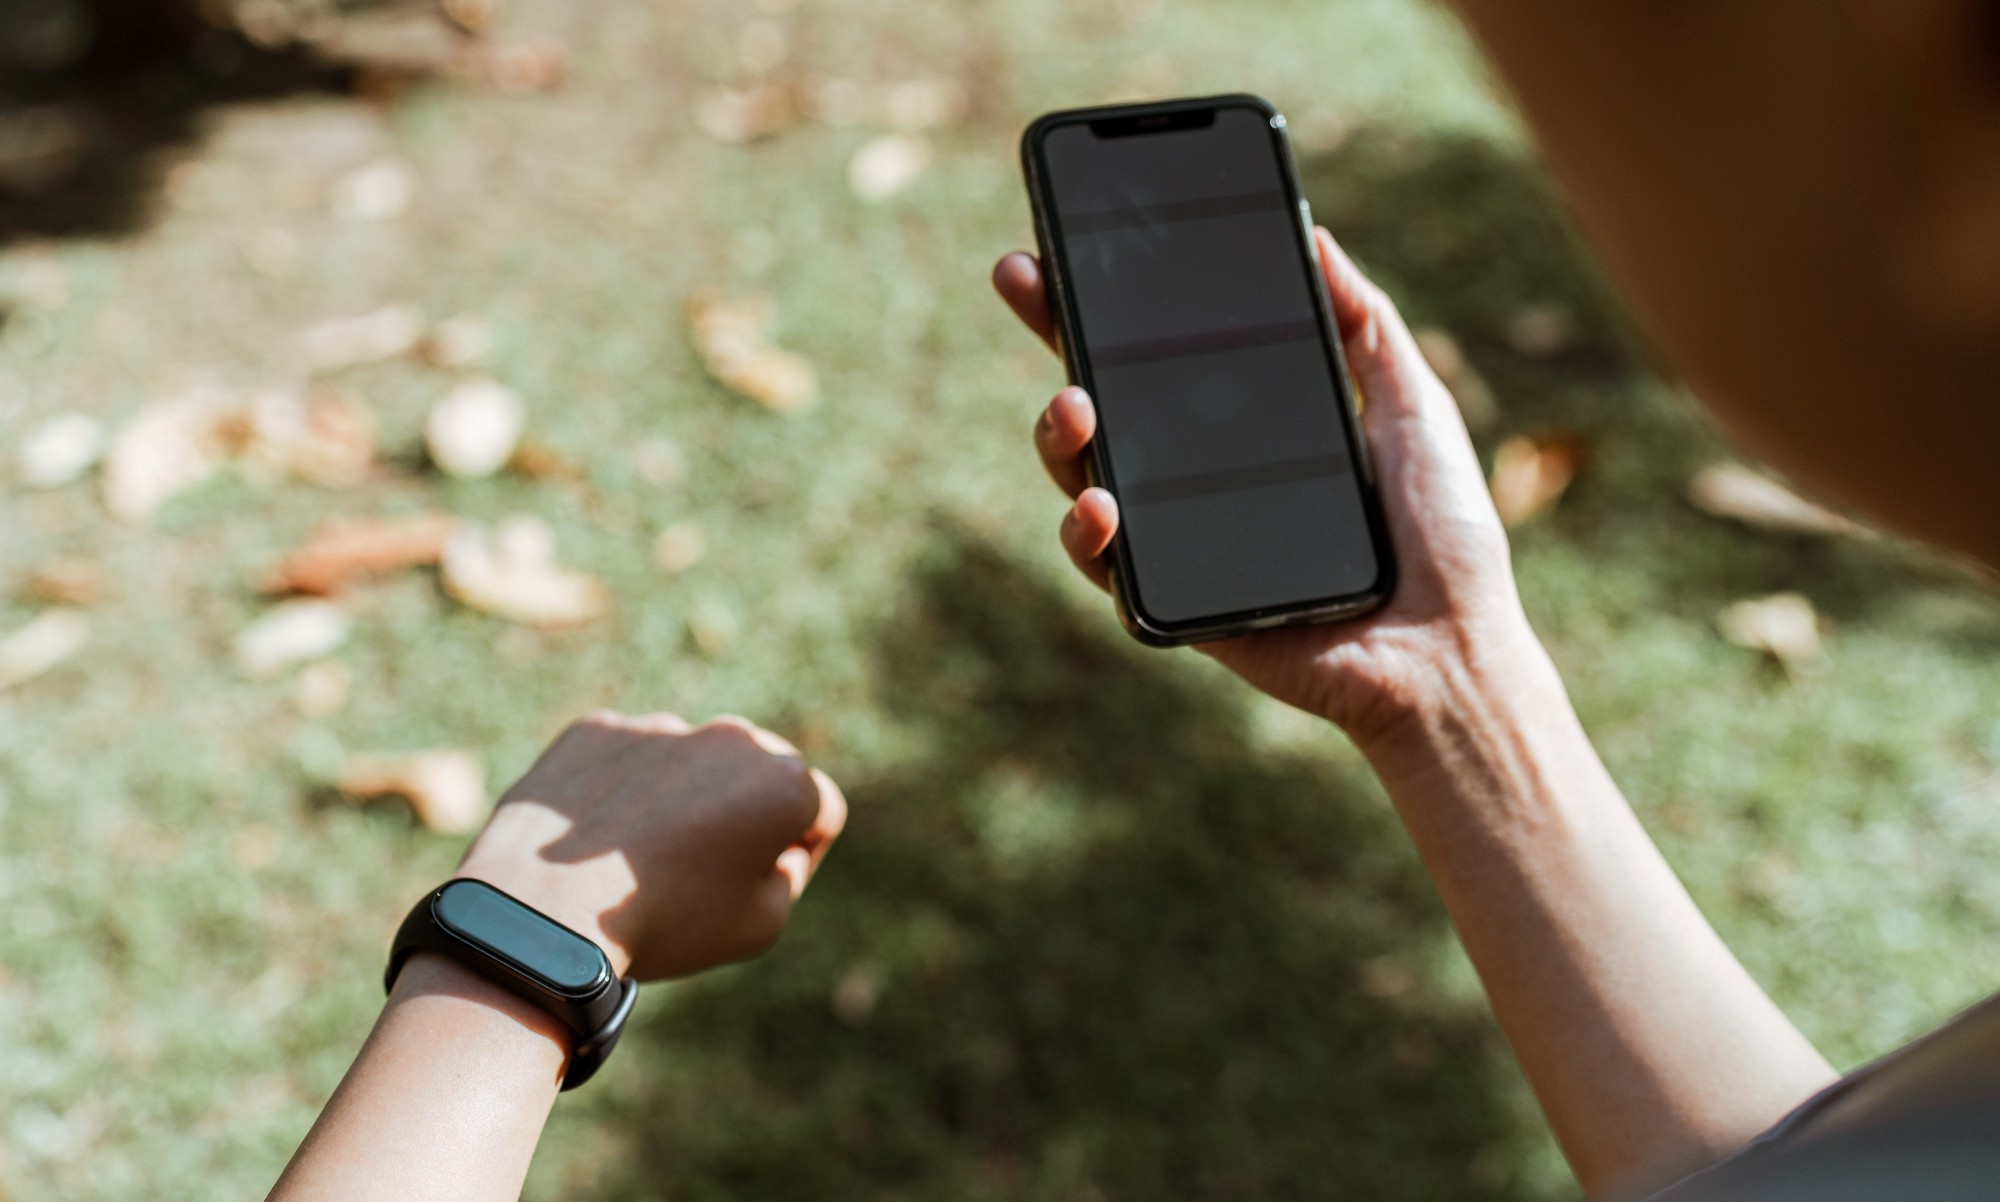 Wearable devices and biosensors for outdoor use require innovative designs and novel materials capable of keeping down their temperature, even in sunlight | Photo courtesy: Ketut Subiyanto at Pexels